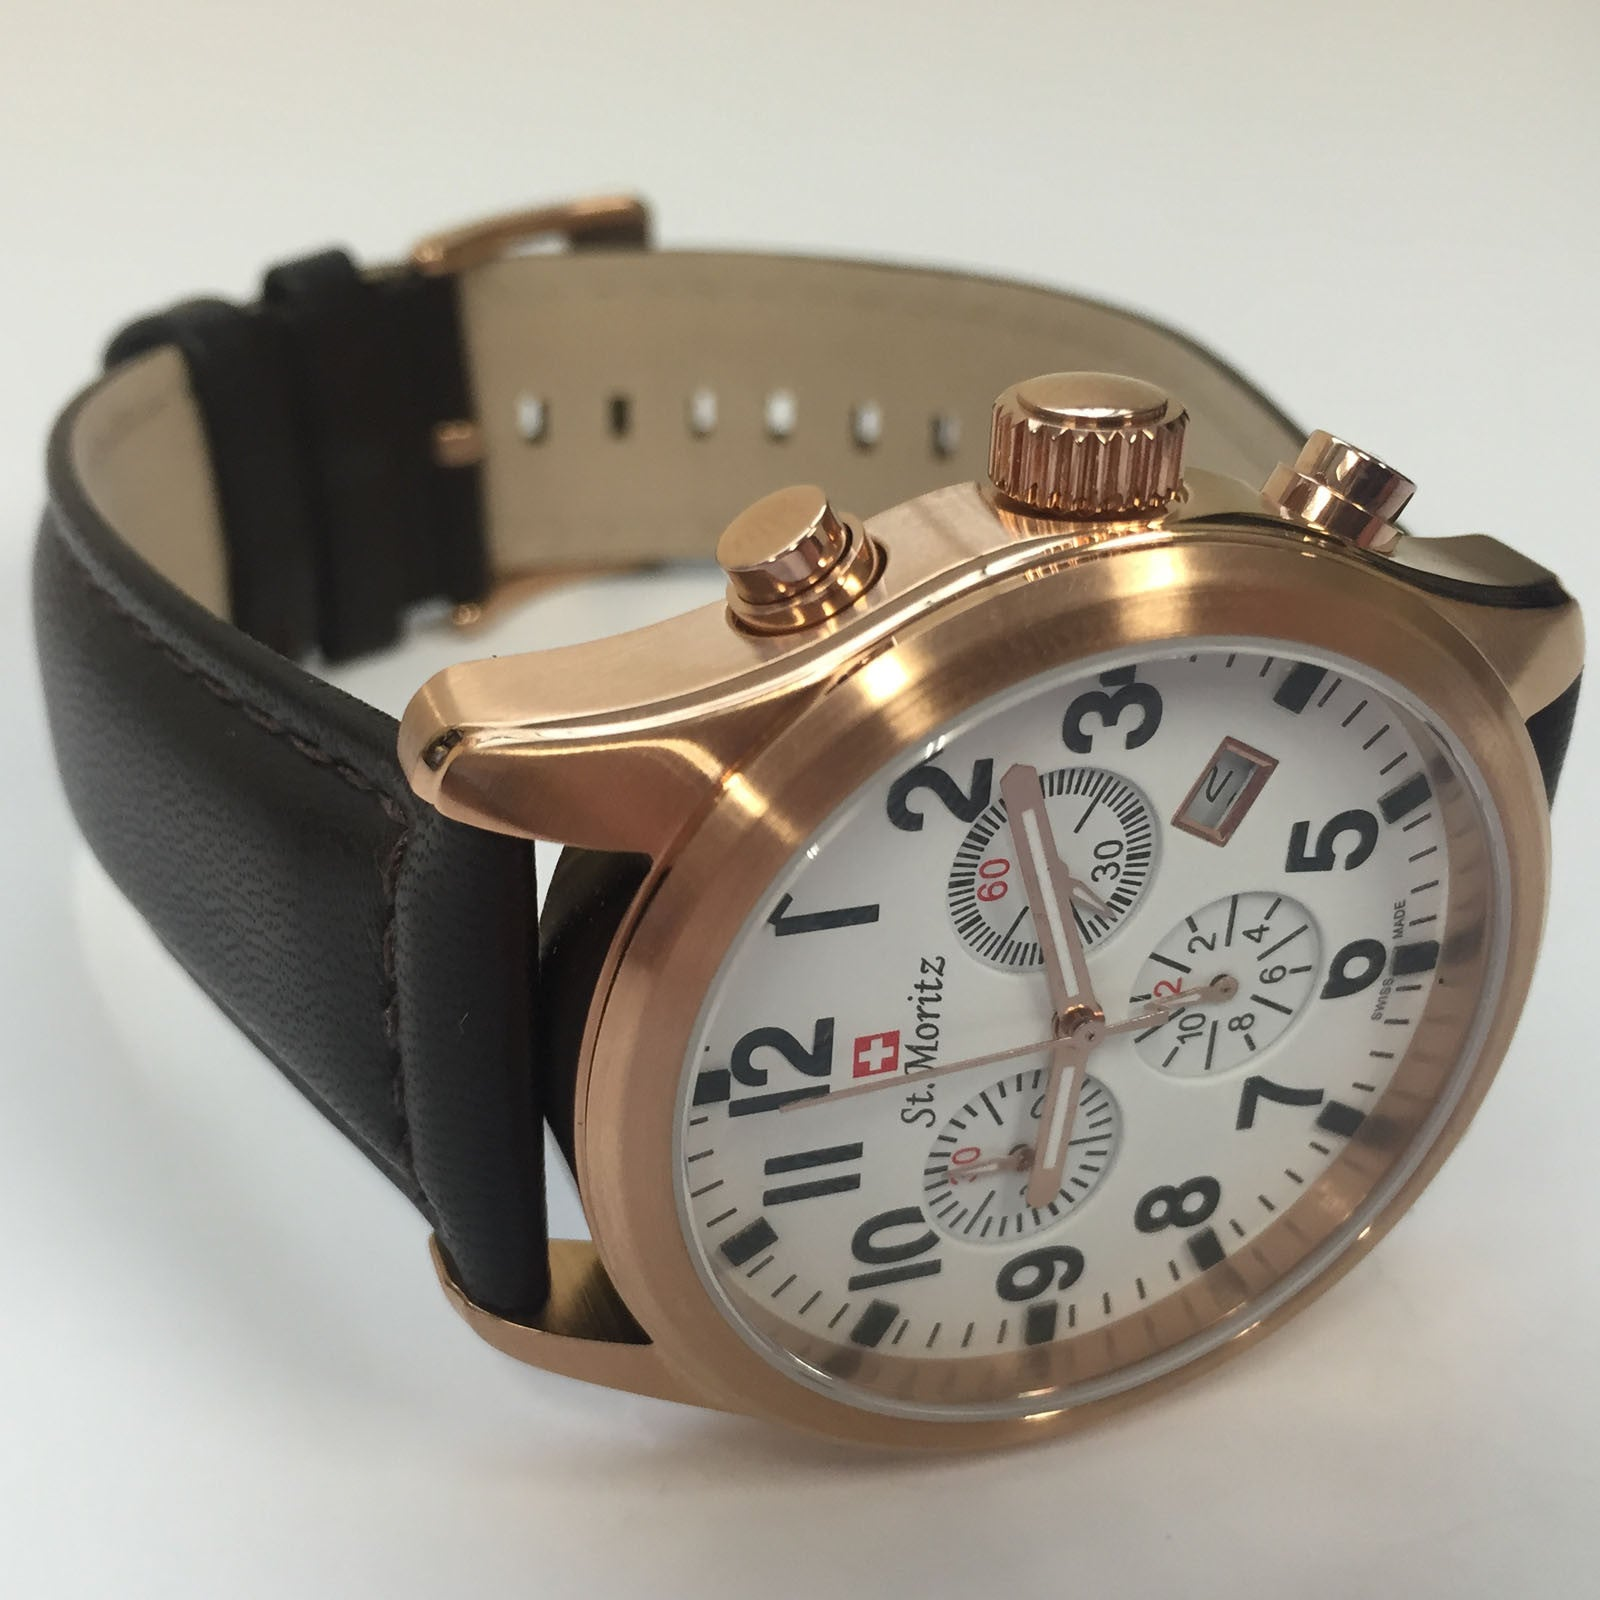 Stylish Rotary St Moritz Chronograph Brown Leather Strap Mens Watch GS03609/18